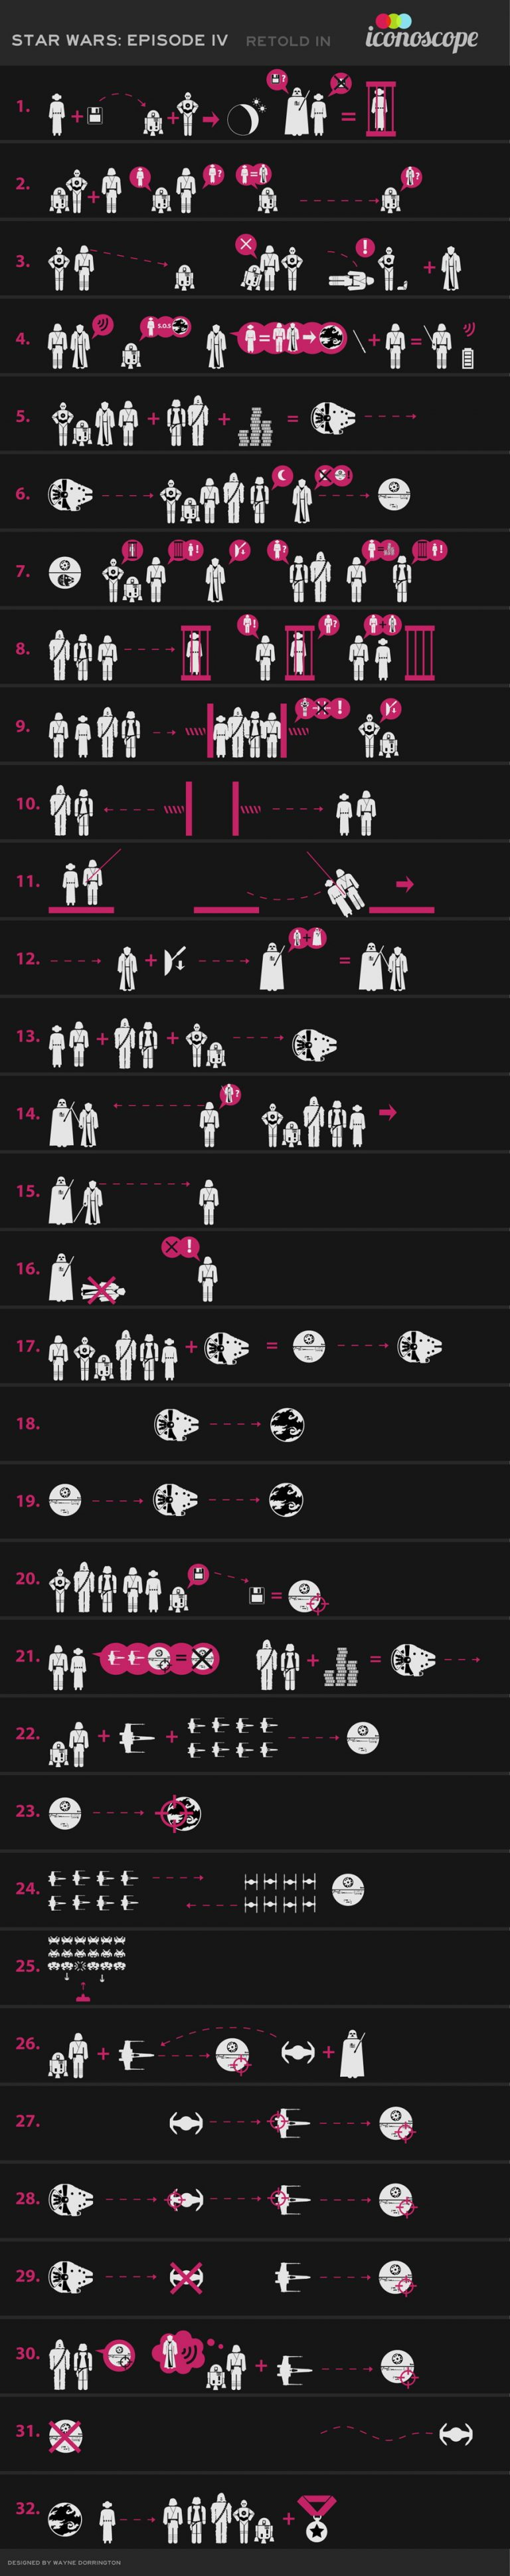 star_wars_a_new_hope_in_icons_infographic